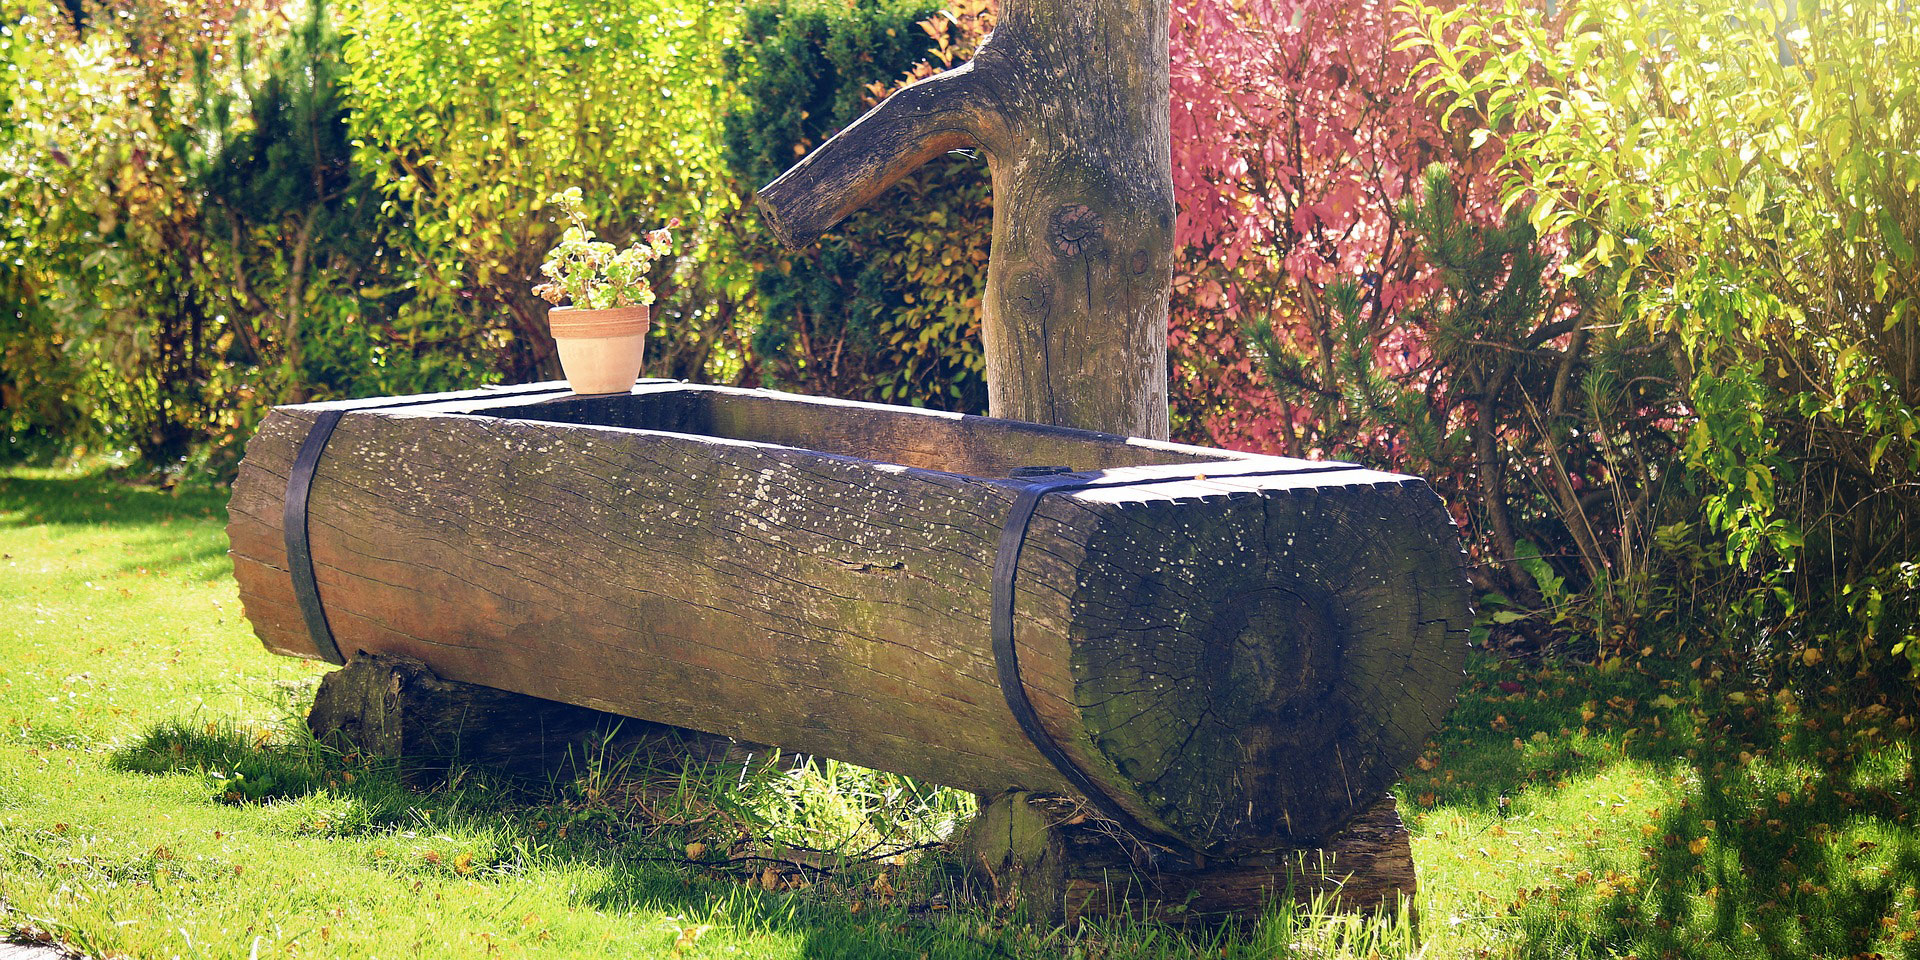 Water features are a fantastic way to enhance your landscaping and bring excitement or tranquility to your environment